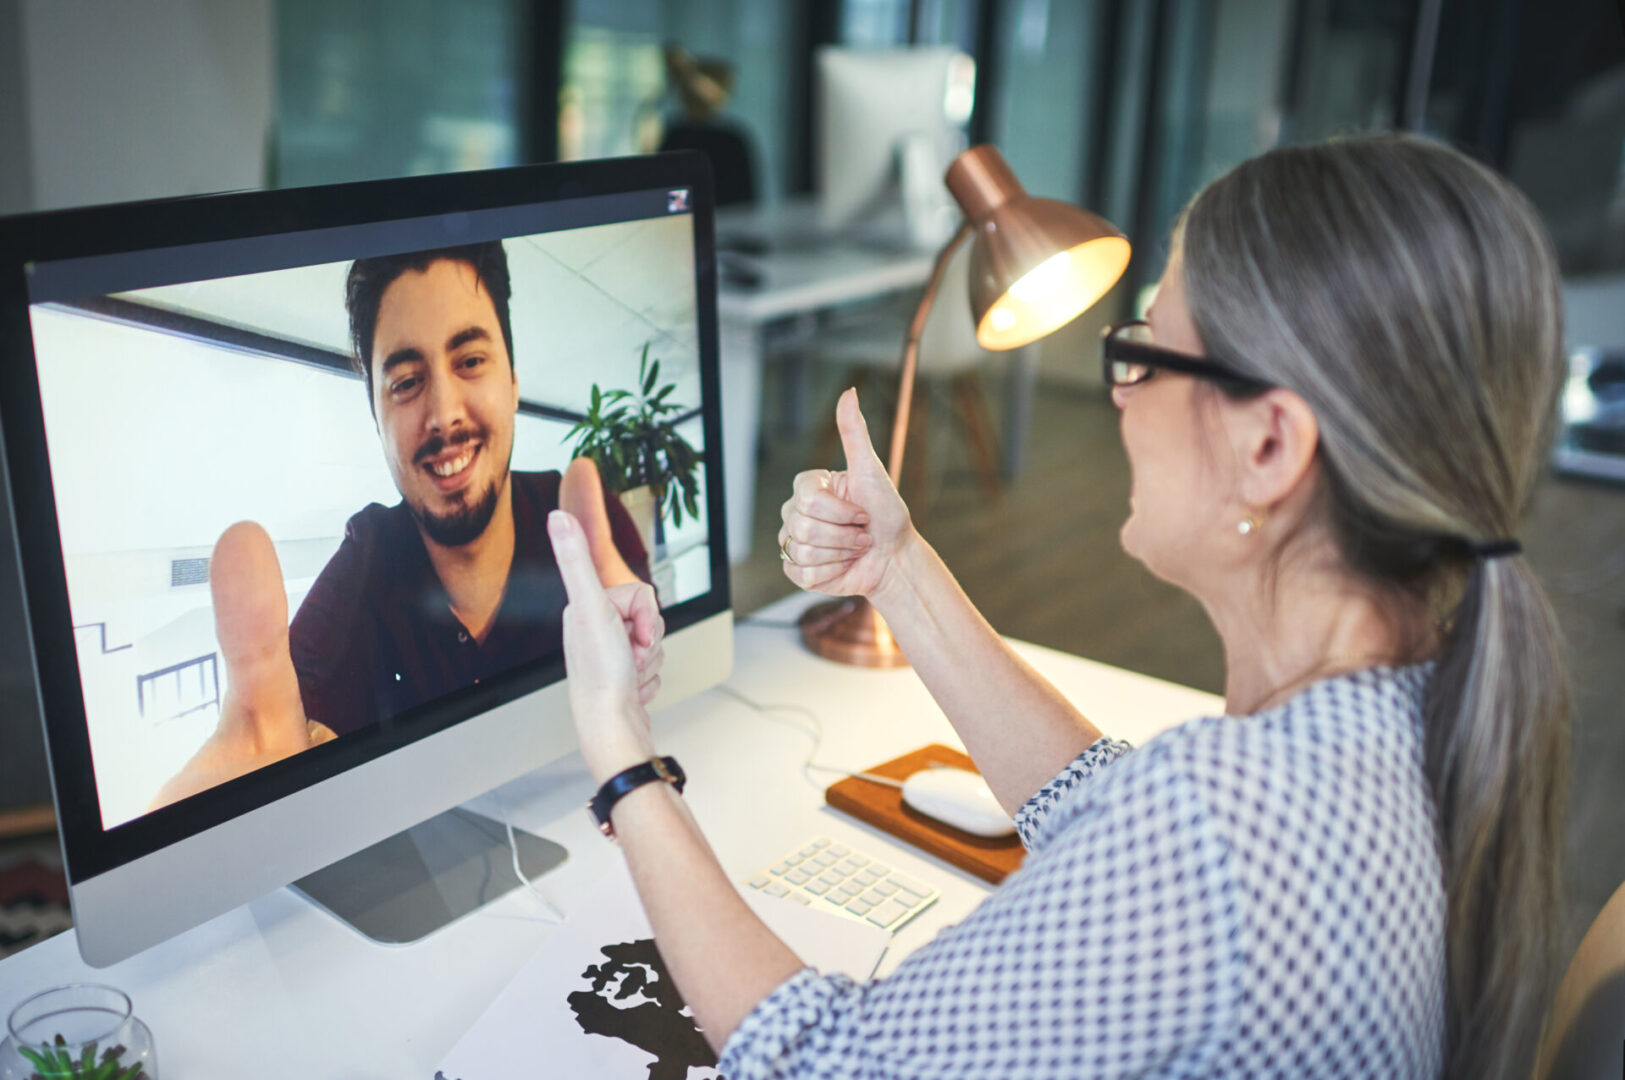 Shot of a young man showing thumbs up during an online counselling session with a psychologist